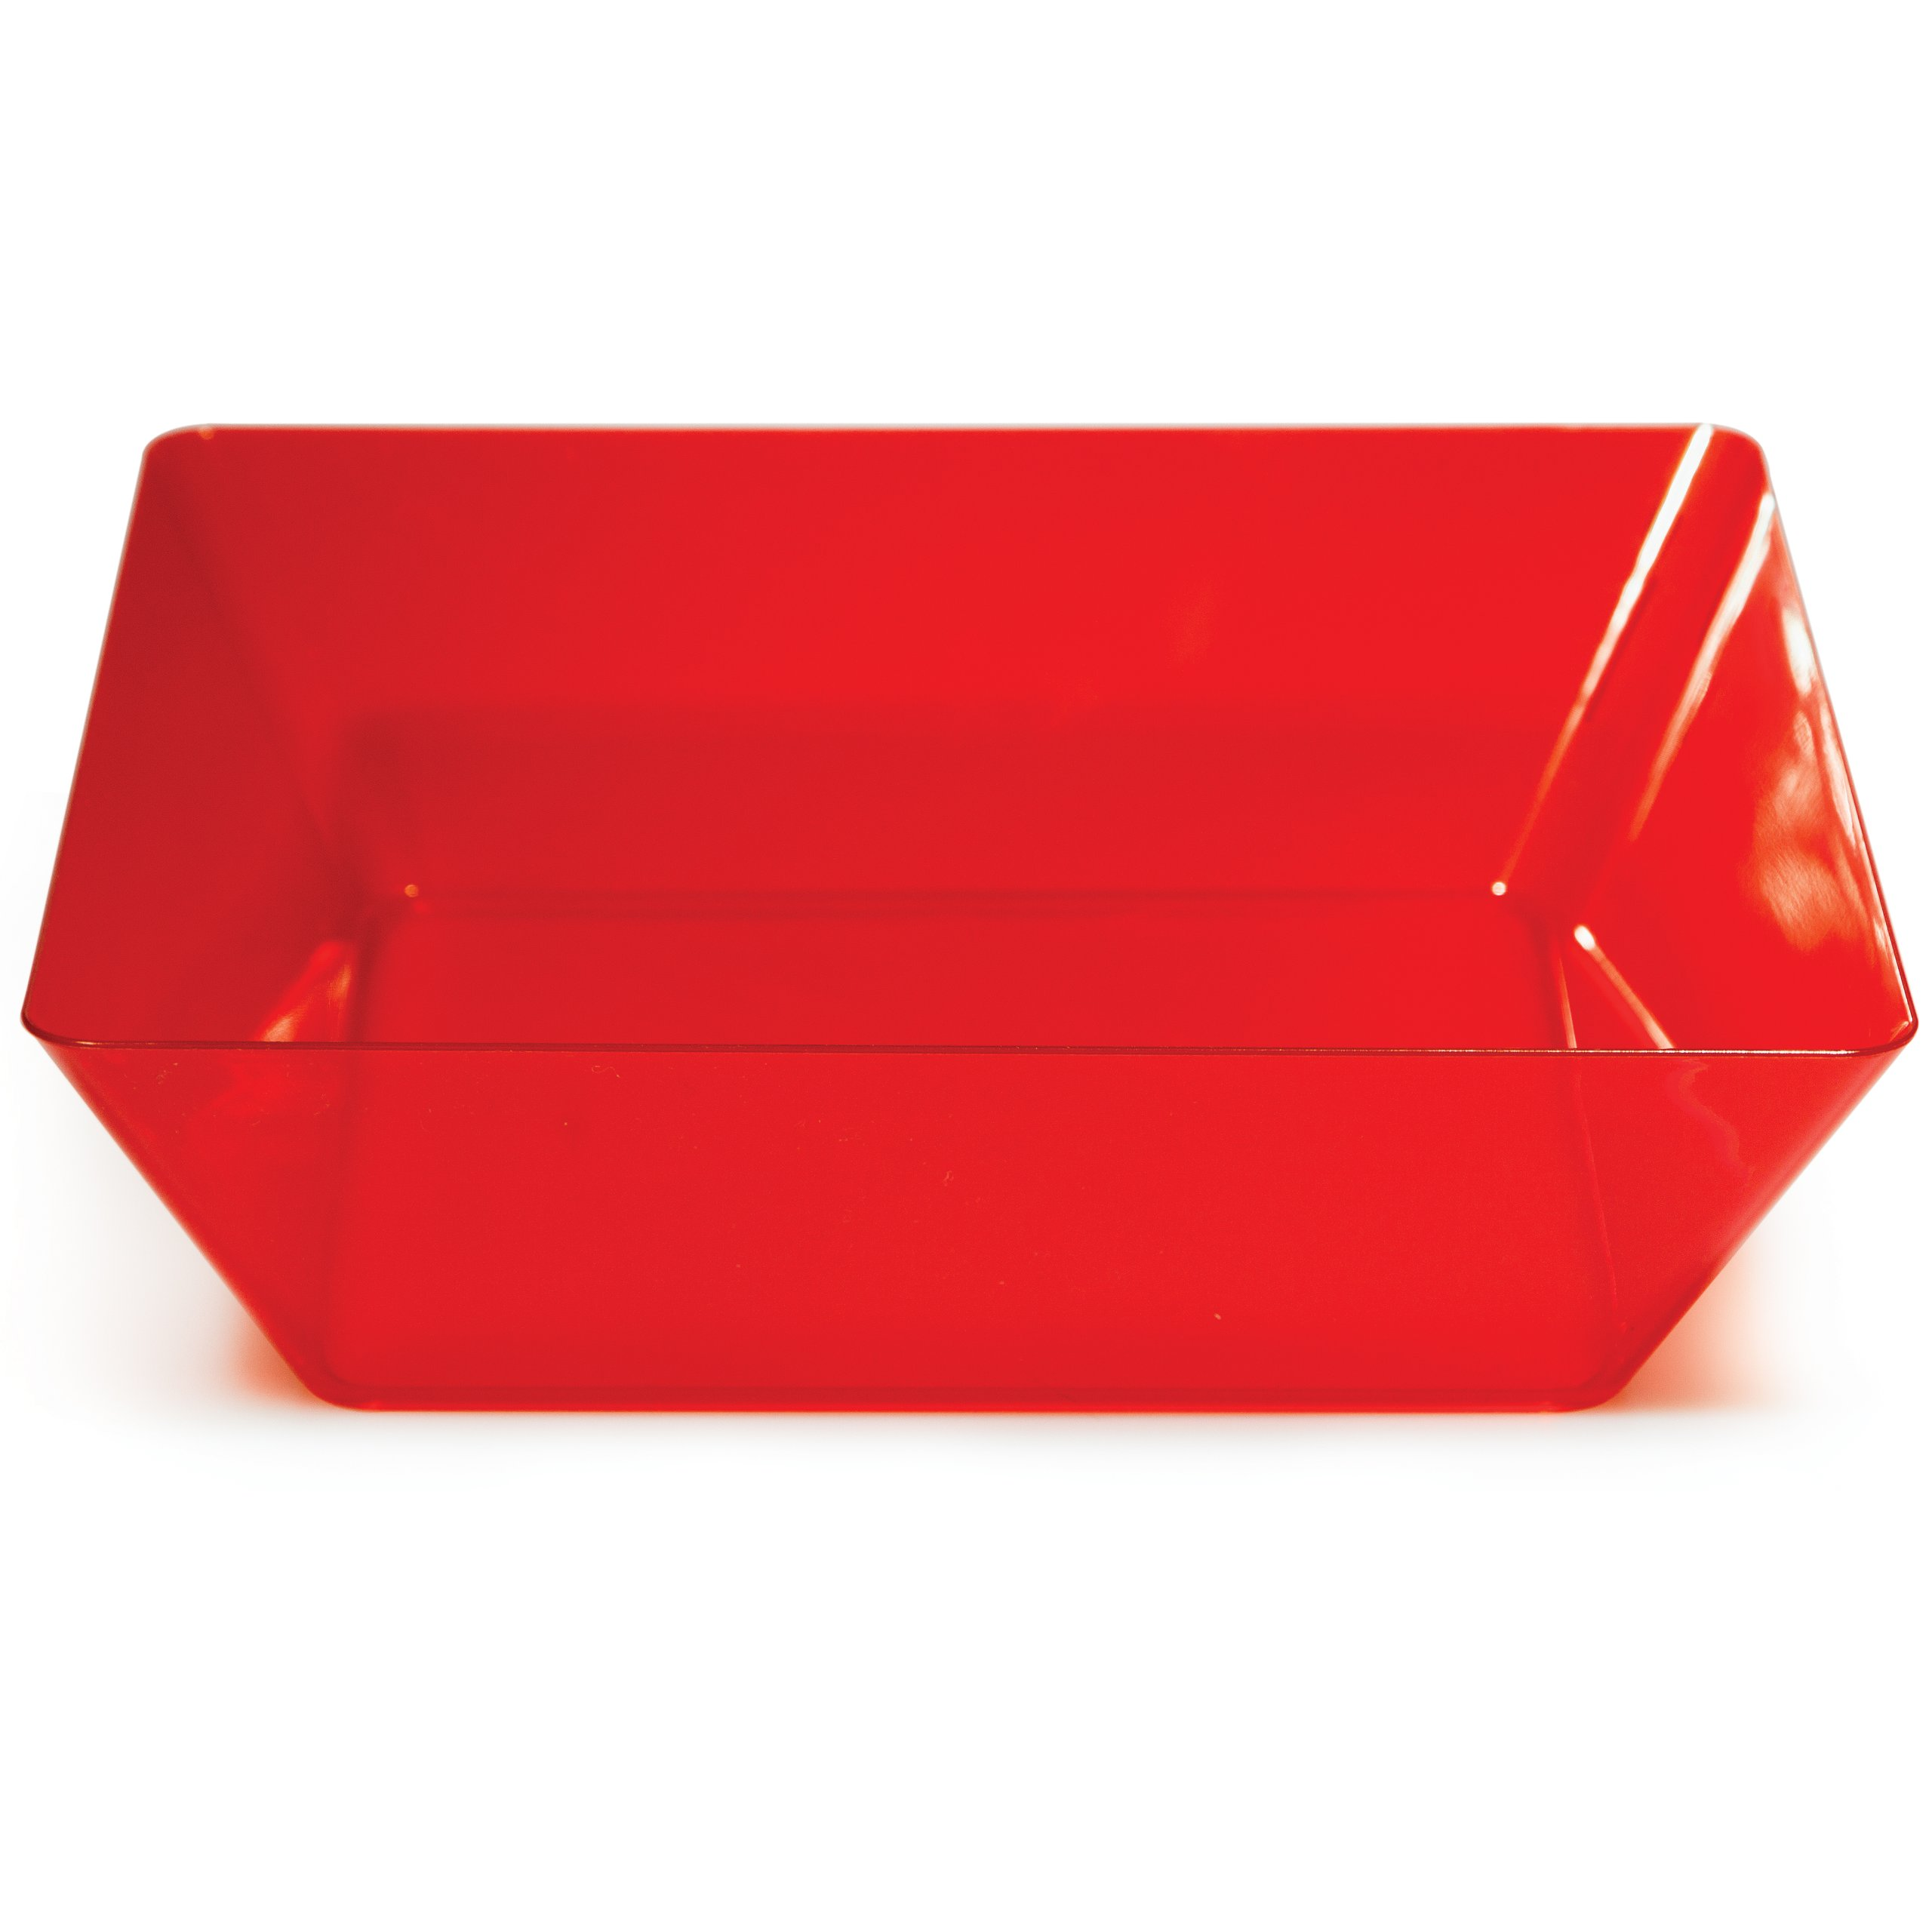 Creative Converting Square Plastic Serving Bowl, 11-Inch, Translucent Red - 053419